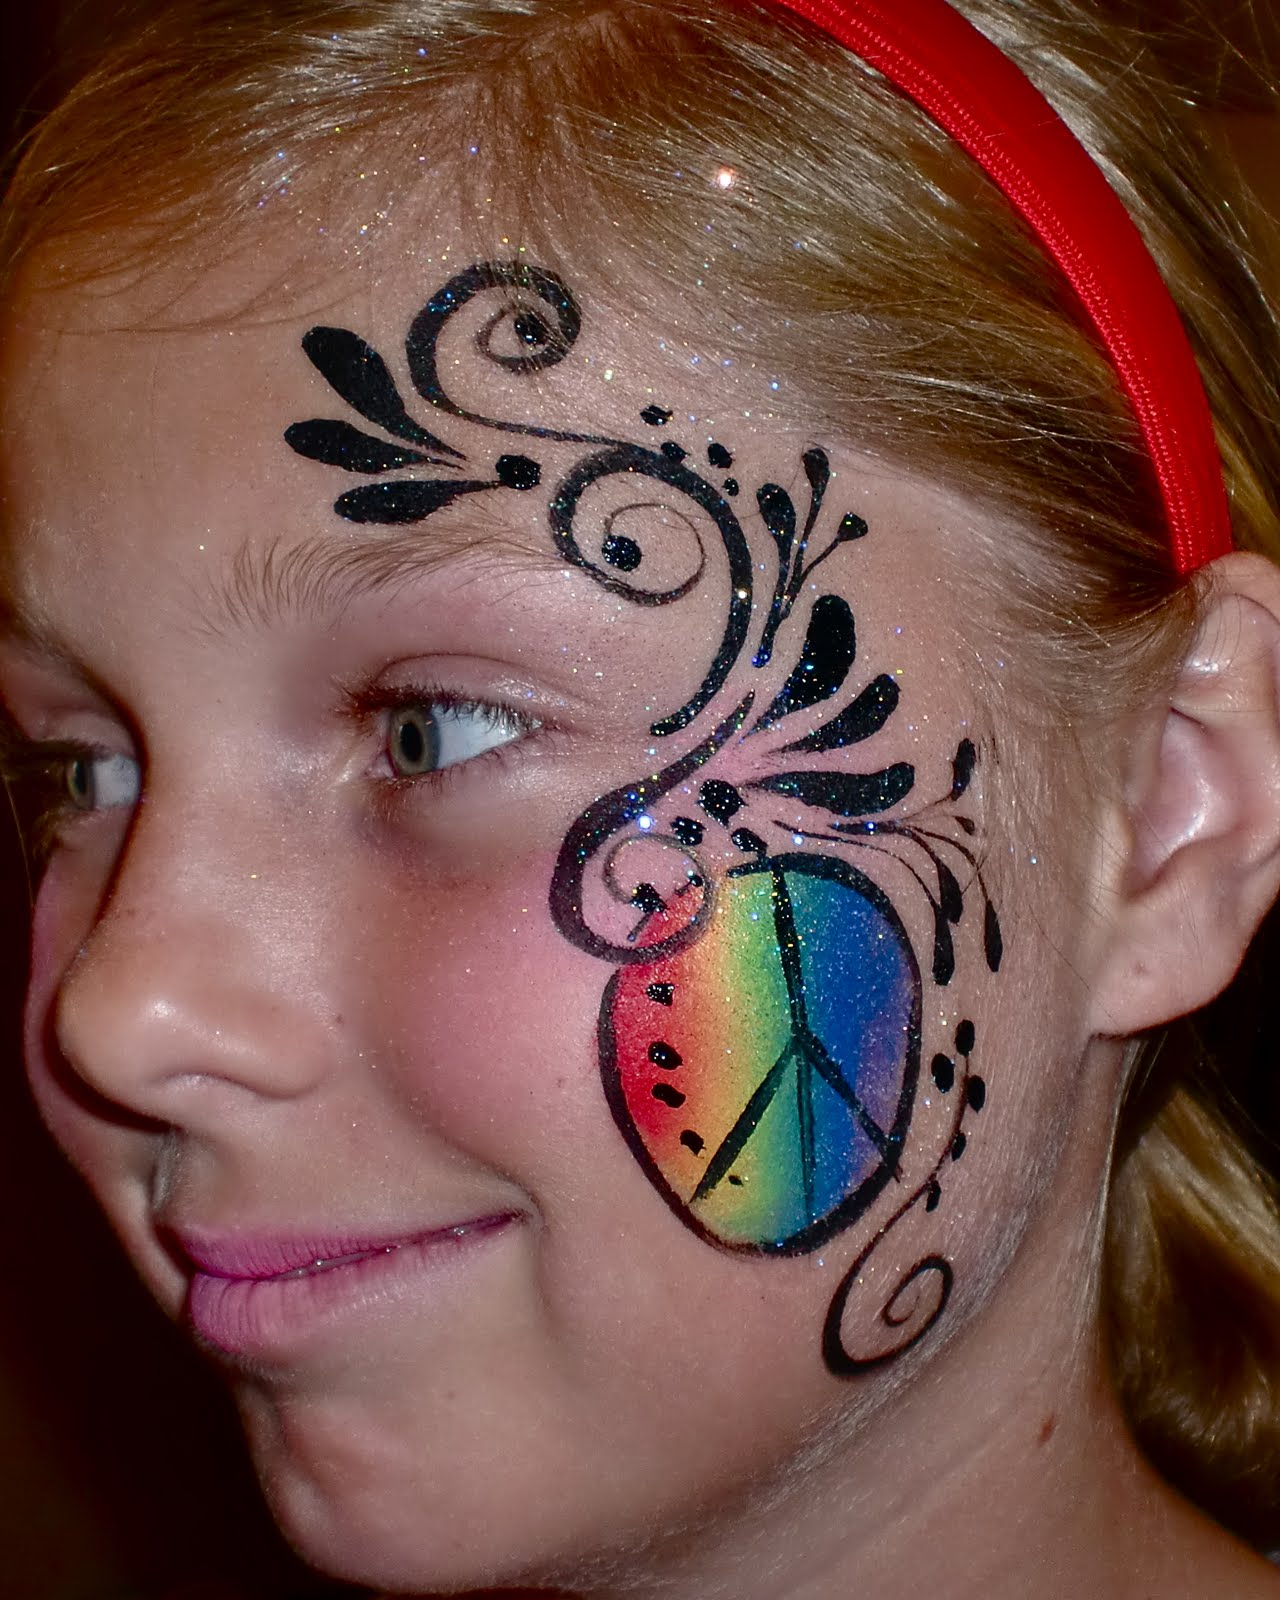 Face Painting Signs http://facepaintingillusions.blogspot.com/2011/06/face-painting-peace-sign.html